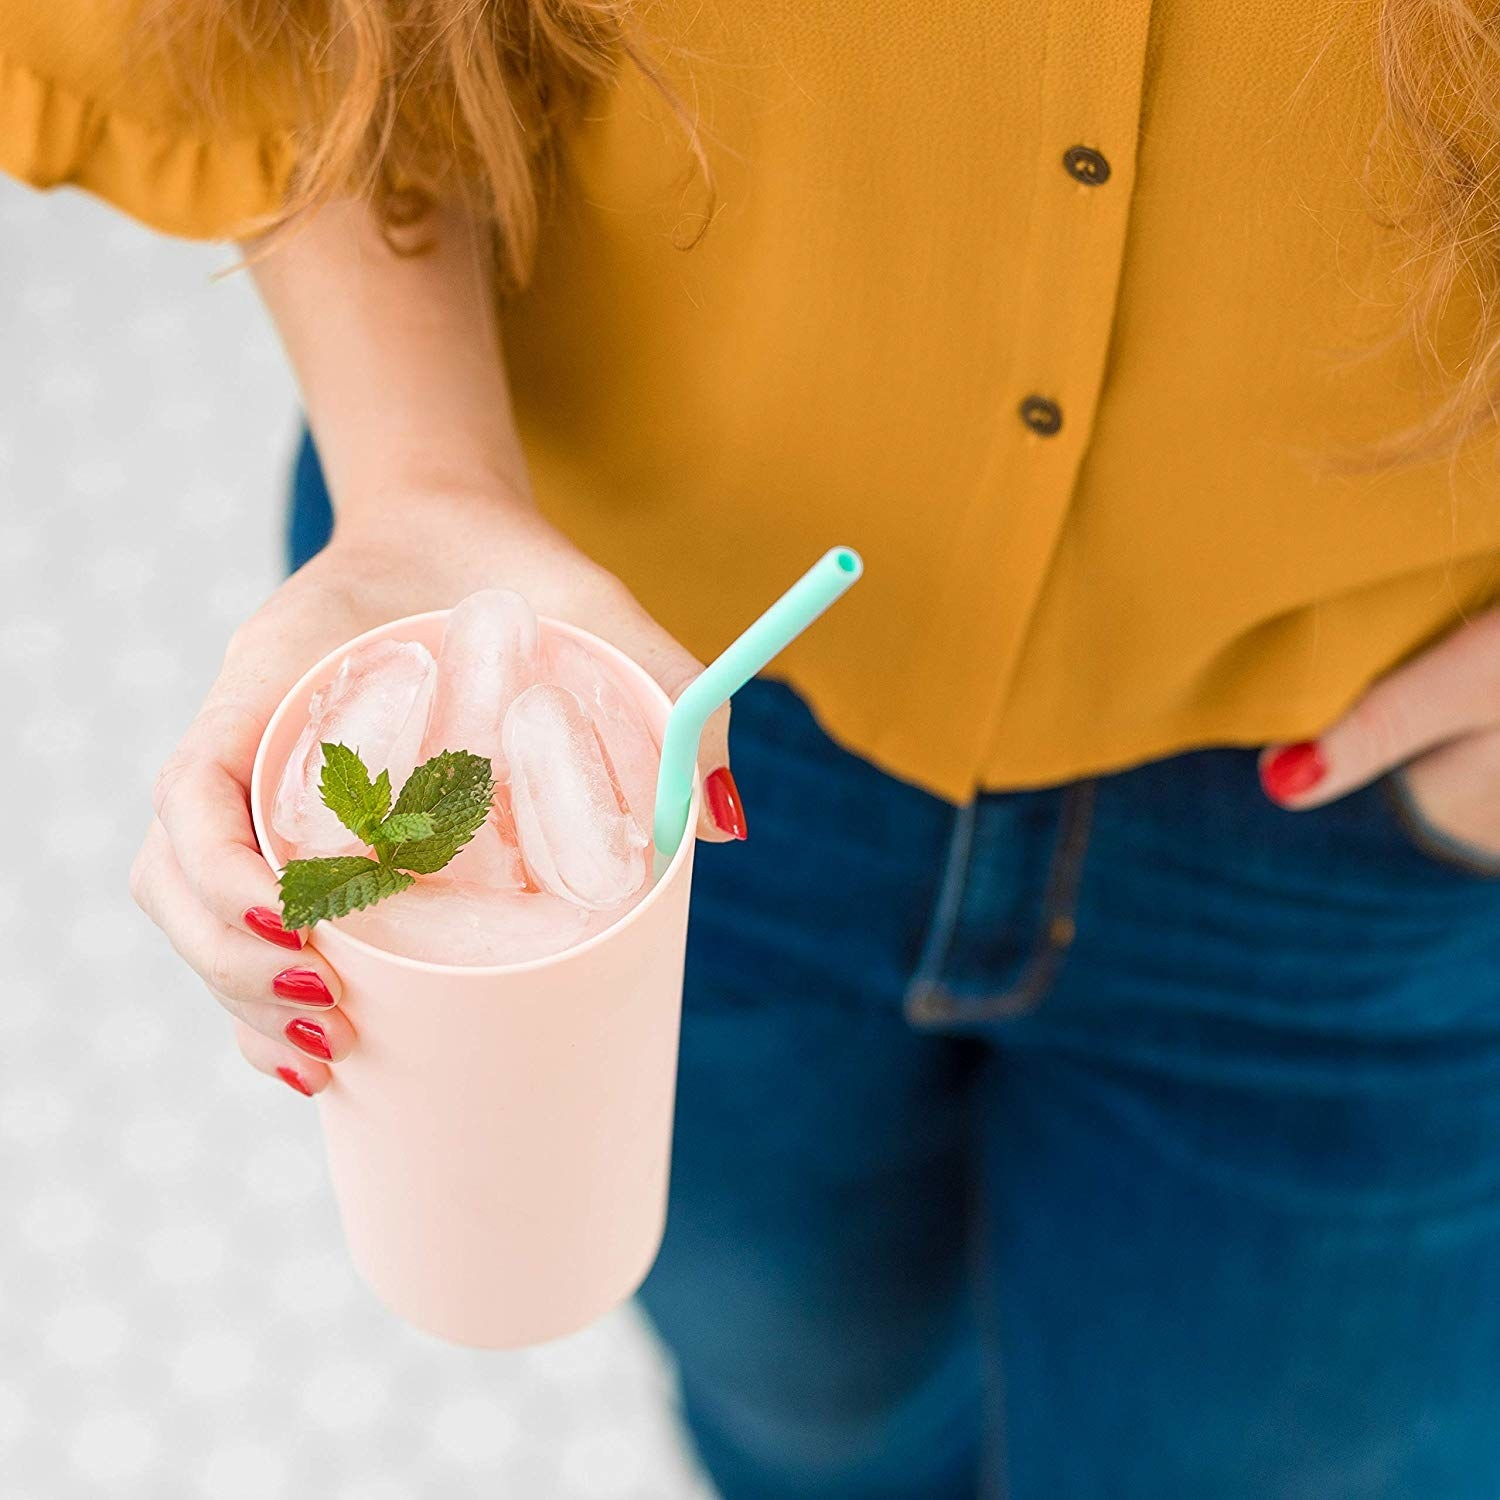 cup with reusable straw in it